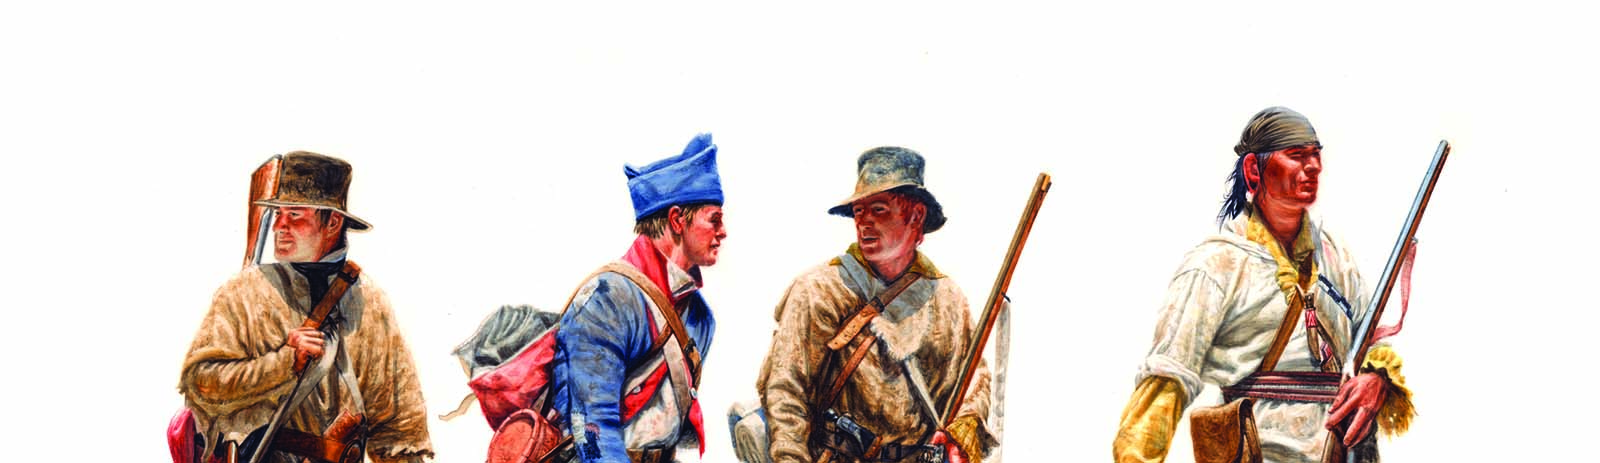 """Michael Haynes (b. 1956). """"The Scouts—John Potts, Richard Windsor, Hugh McNeal, and George Drouillard,"""" 1805, 2008. Watercolor. Collection of Timothy Peterson. Image courtesy Michael Haynes. (detail)"""